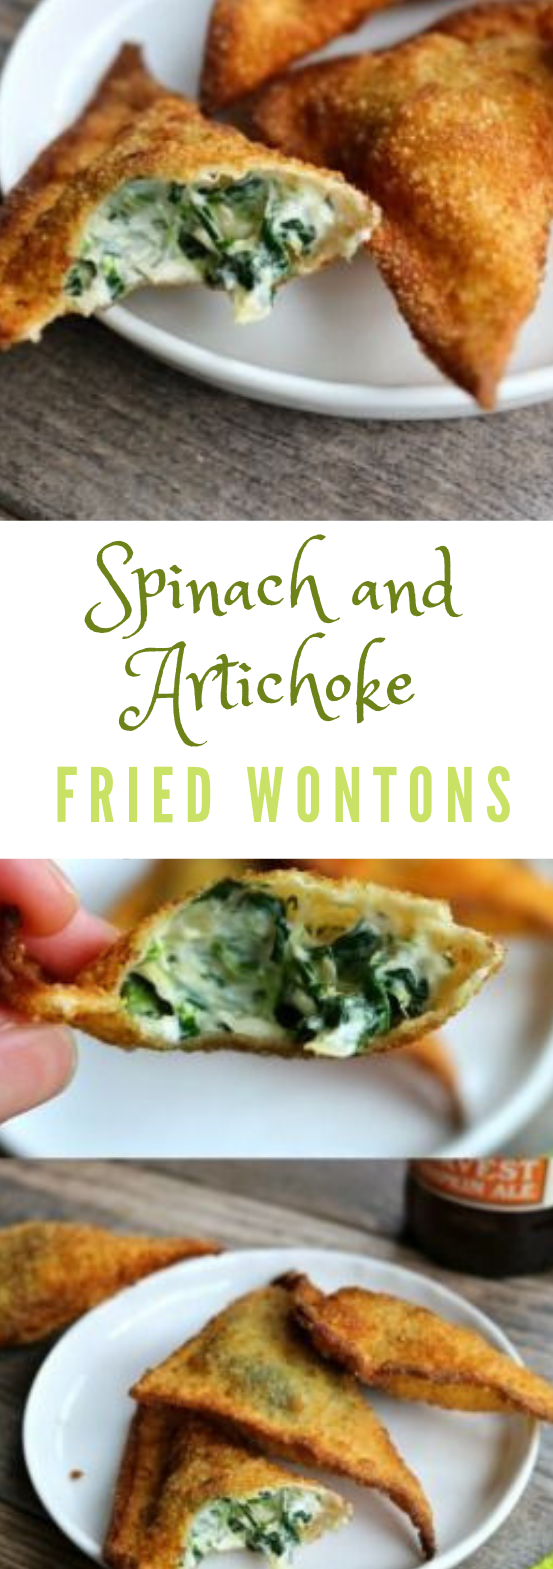 Spinach and Artichoke Fried Wontons #vegetarian #spinach